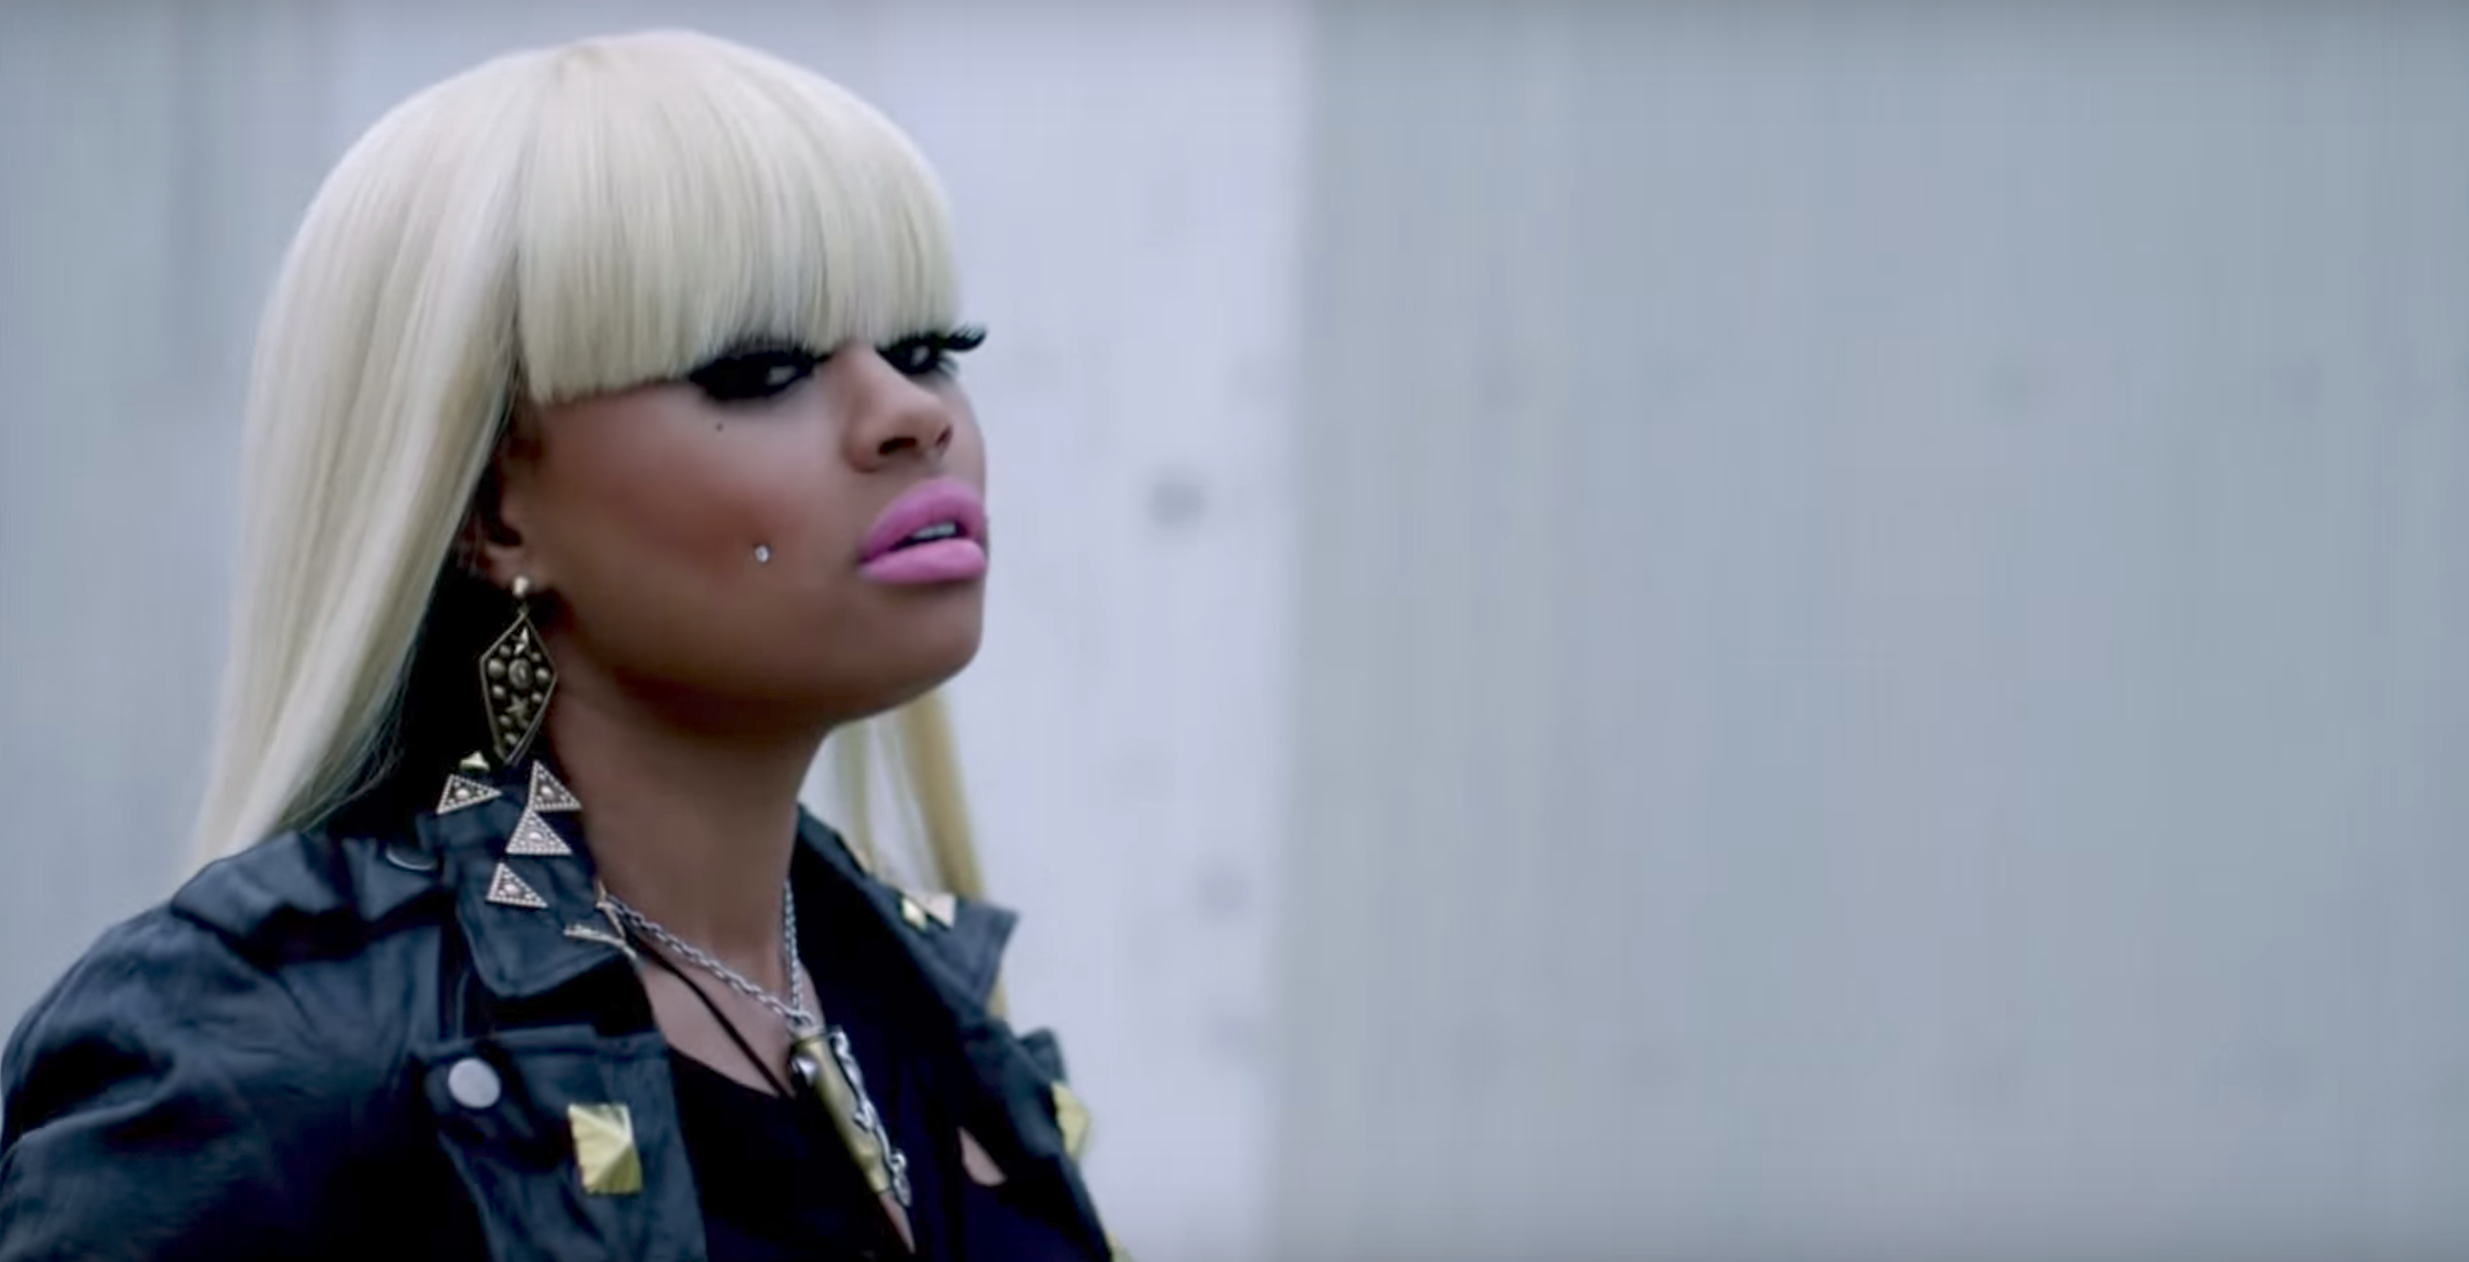 Blac Chyna Puts Her Whole Assets On Display In The Latest Jaw-Dropping Video - Tiny Harris Is Here For It